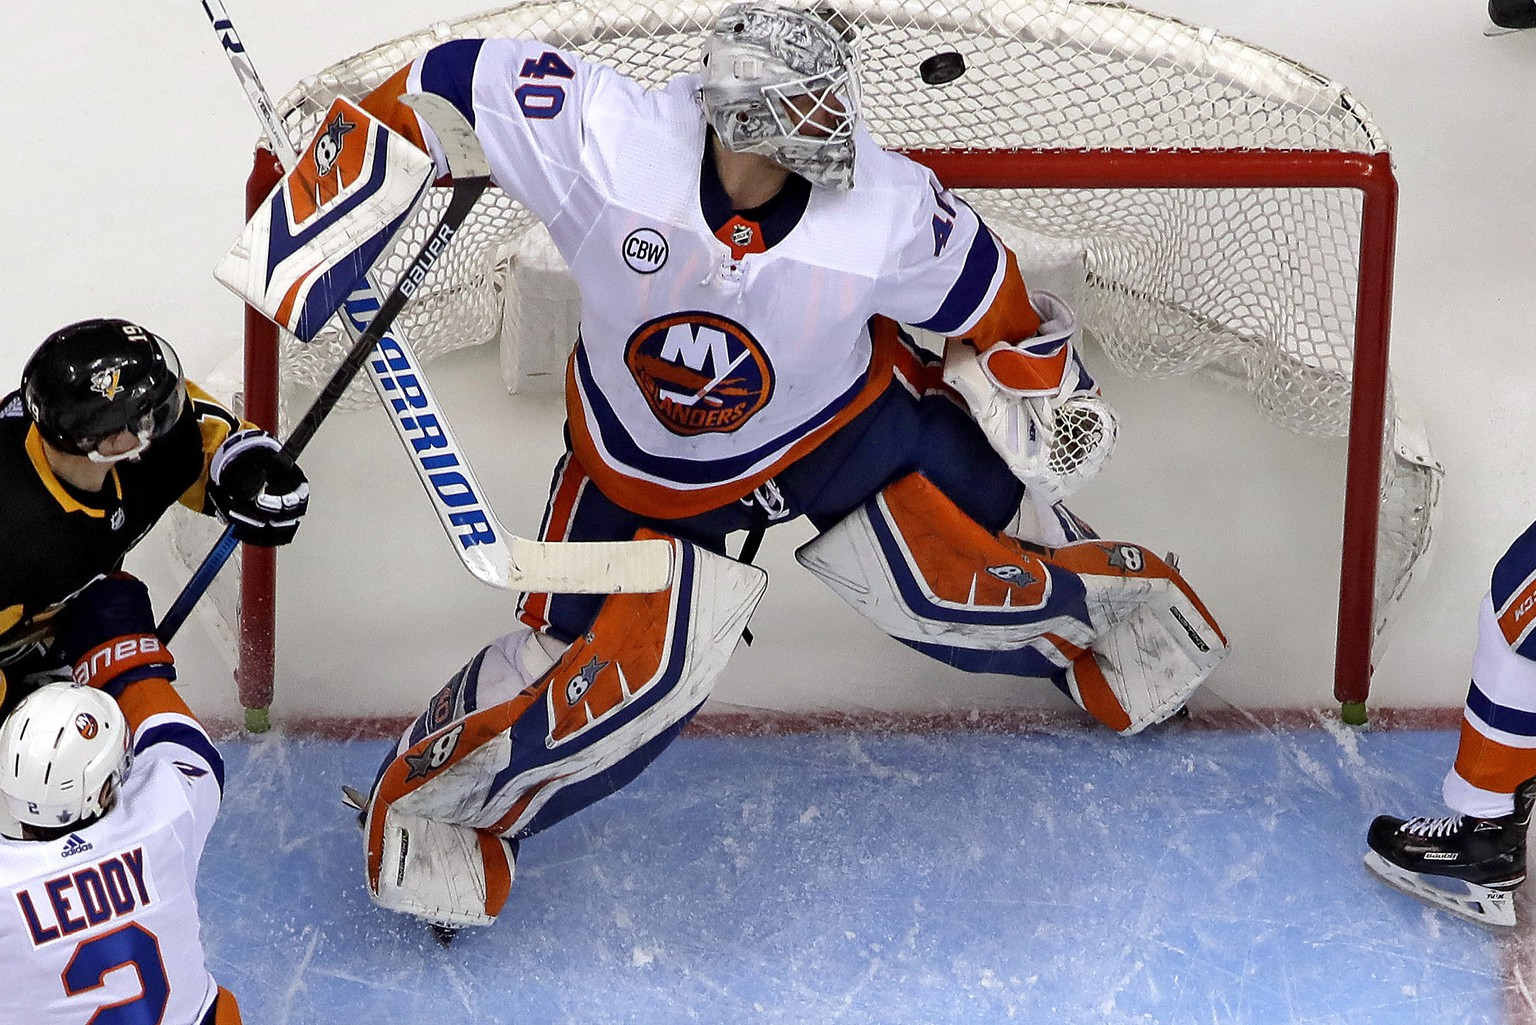 New York Islanders goaltender Robin Lehner (40) watches the puck during the second period in Game 3 of an NHL first-round hockey playoff series against the Pittsburgh Penguins in Pittsburgh, Sunday, April 14, 2019. (AP Photo/Gene J. Puskar)